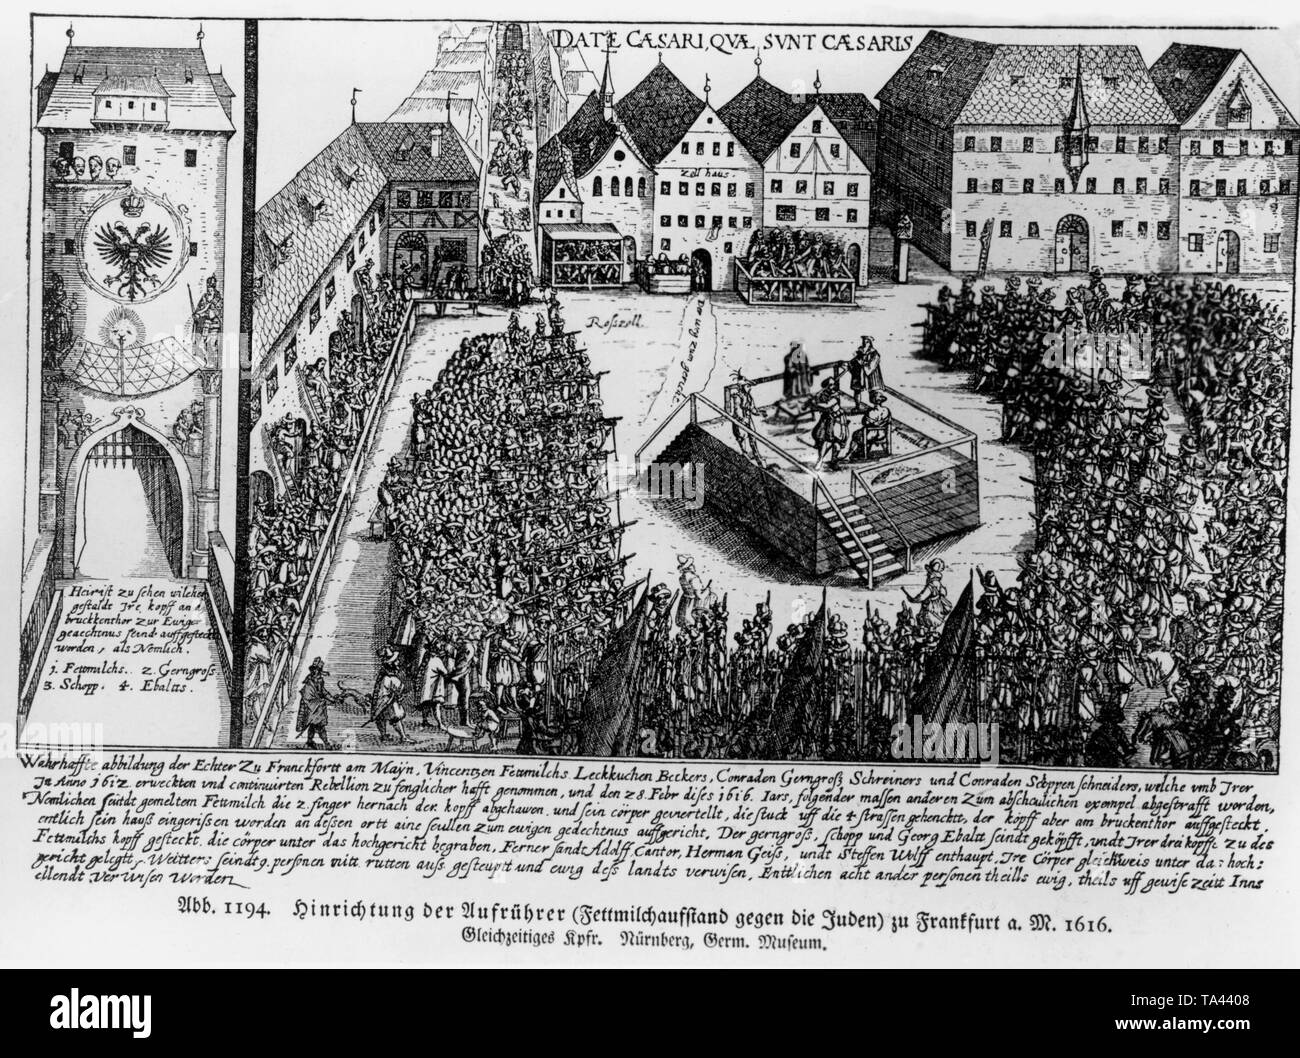 The rebels of the insurrection led by Vincenz Fettmilch, Konrad Gerngross and Konrad Schoppen are executed on the scaffold at the Frankfurt Rossmarkt. This is not based directly on the plunderings in the Judengasse (Jews' Lane) but on the lese majesty, since they had ignored the Emperor's orders. - Stock Image